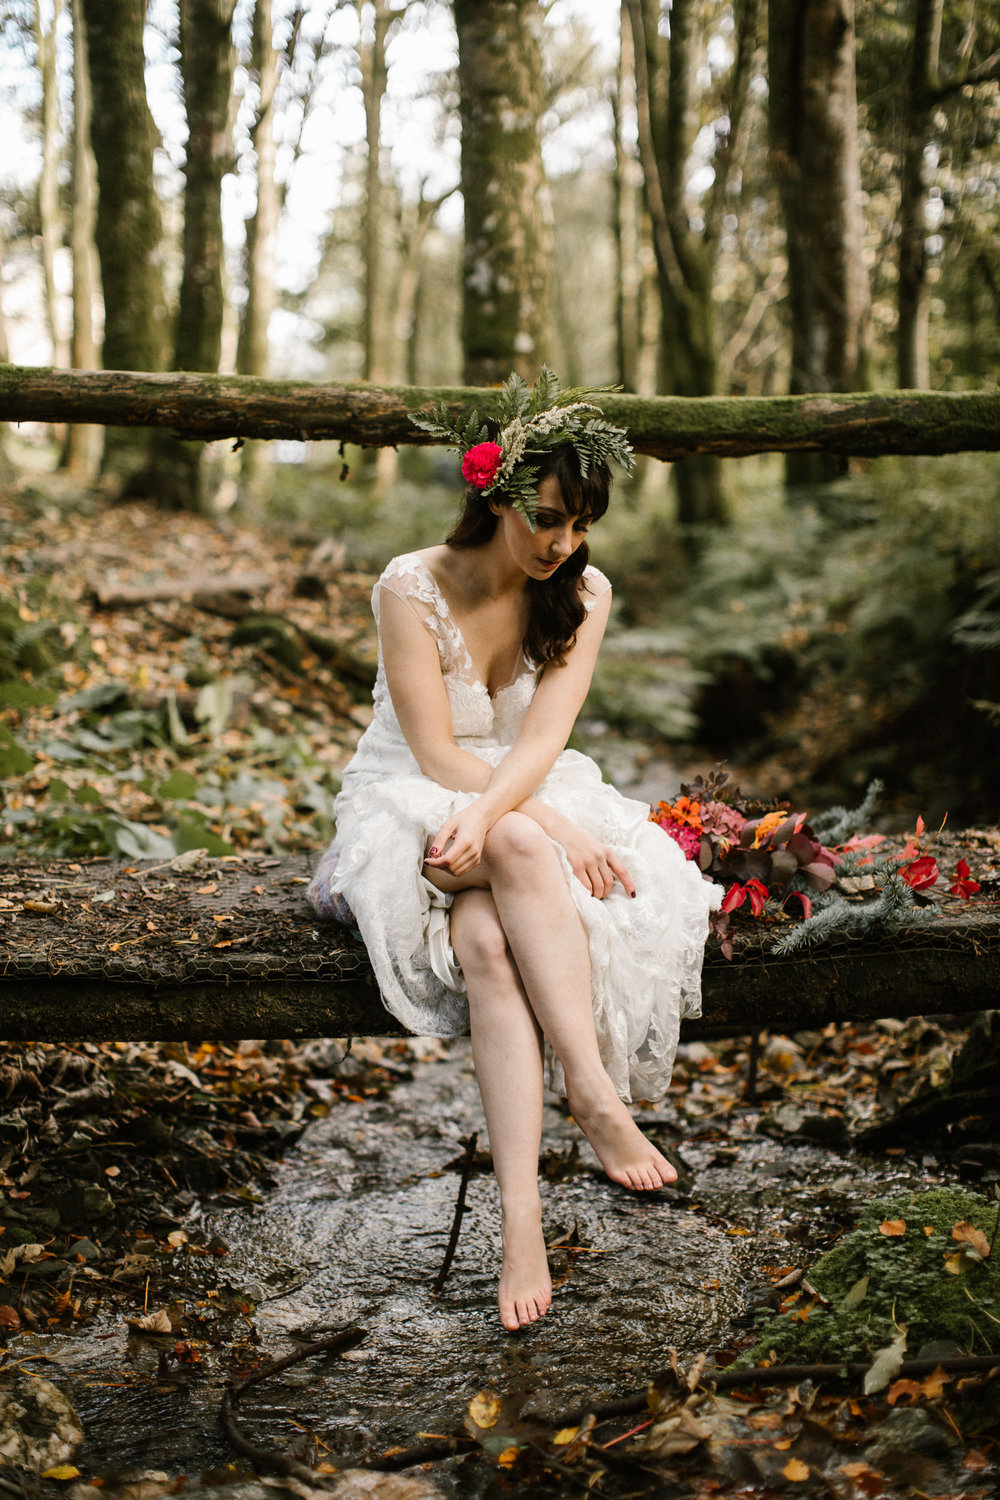 clairebyrnephotography-styled-shoot-huntingbrook-gardens-inspiration-weddings-woods-forest-64.jpg